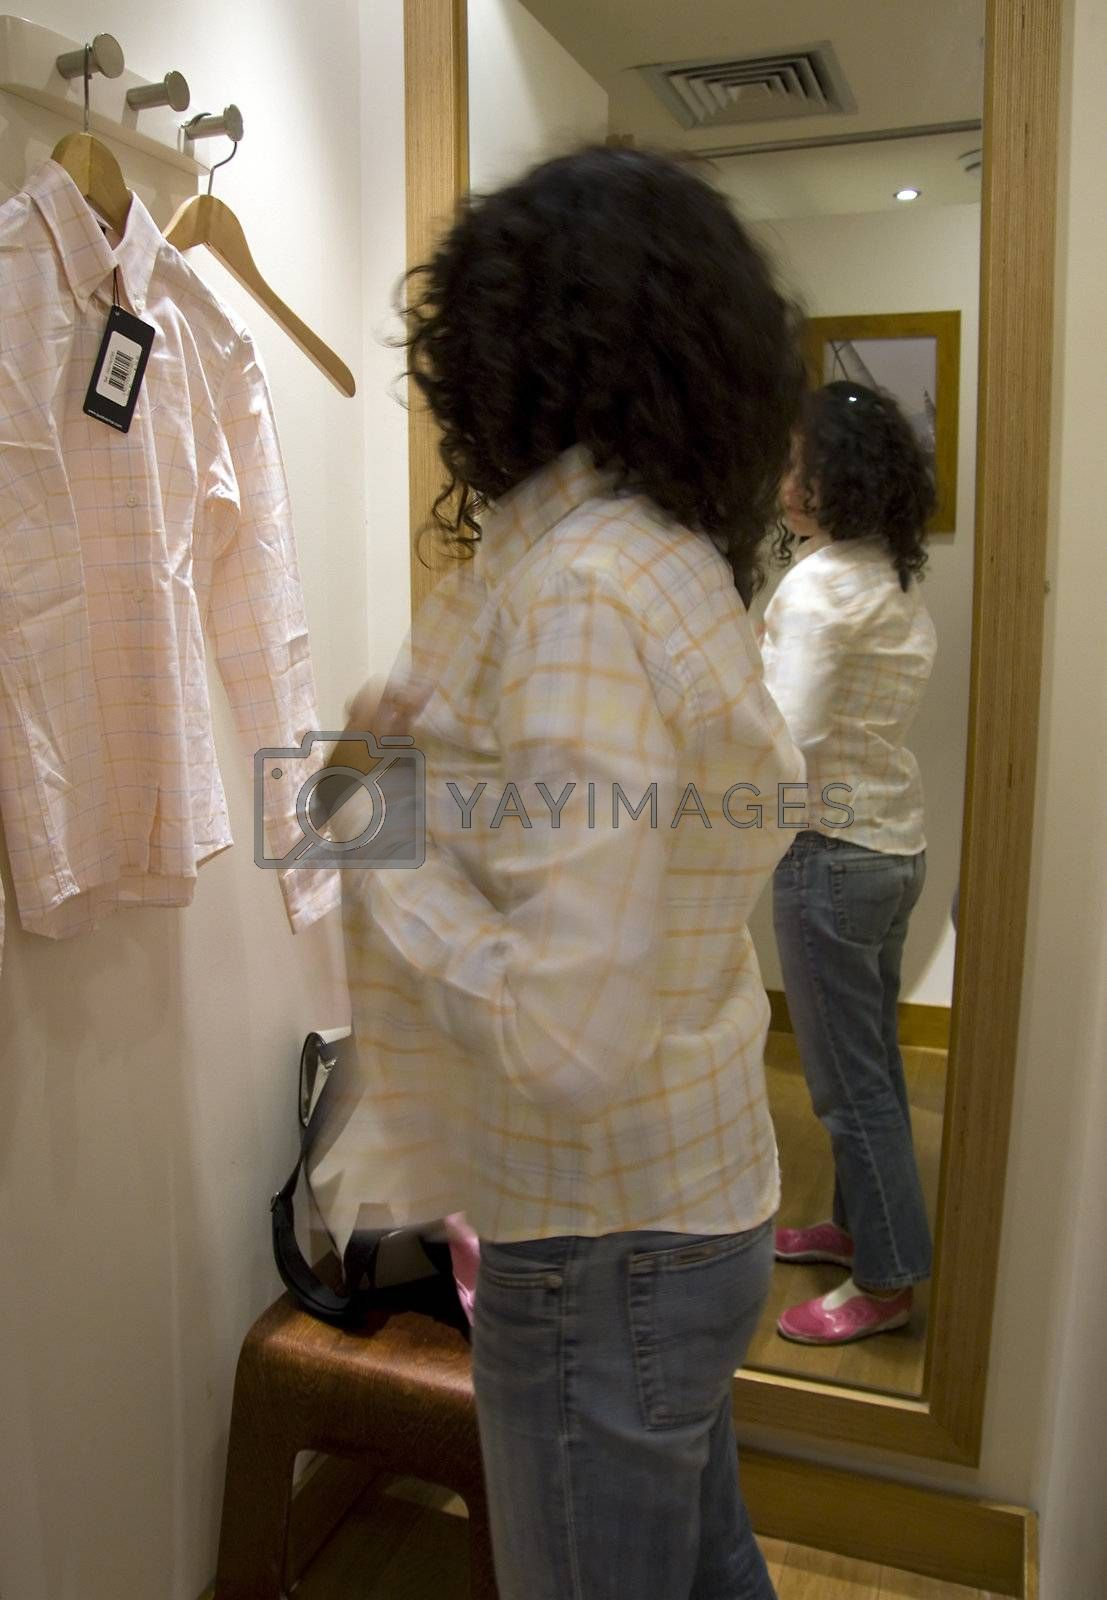 Young woman shopping ant trying a shirt by PauloResende